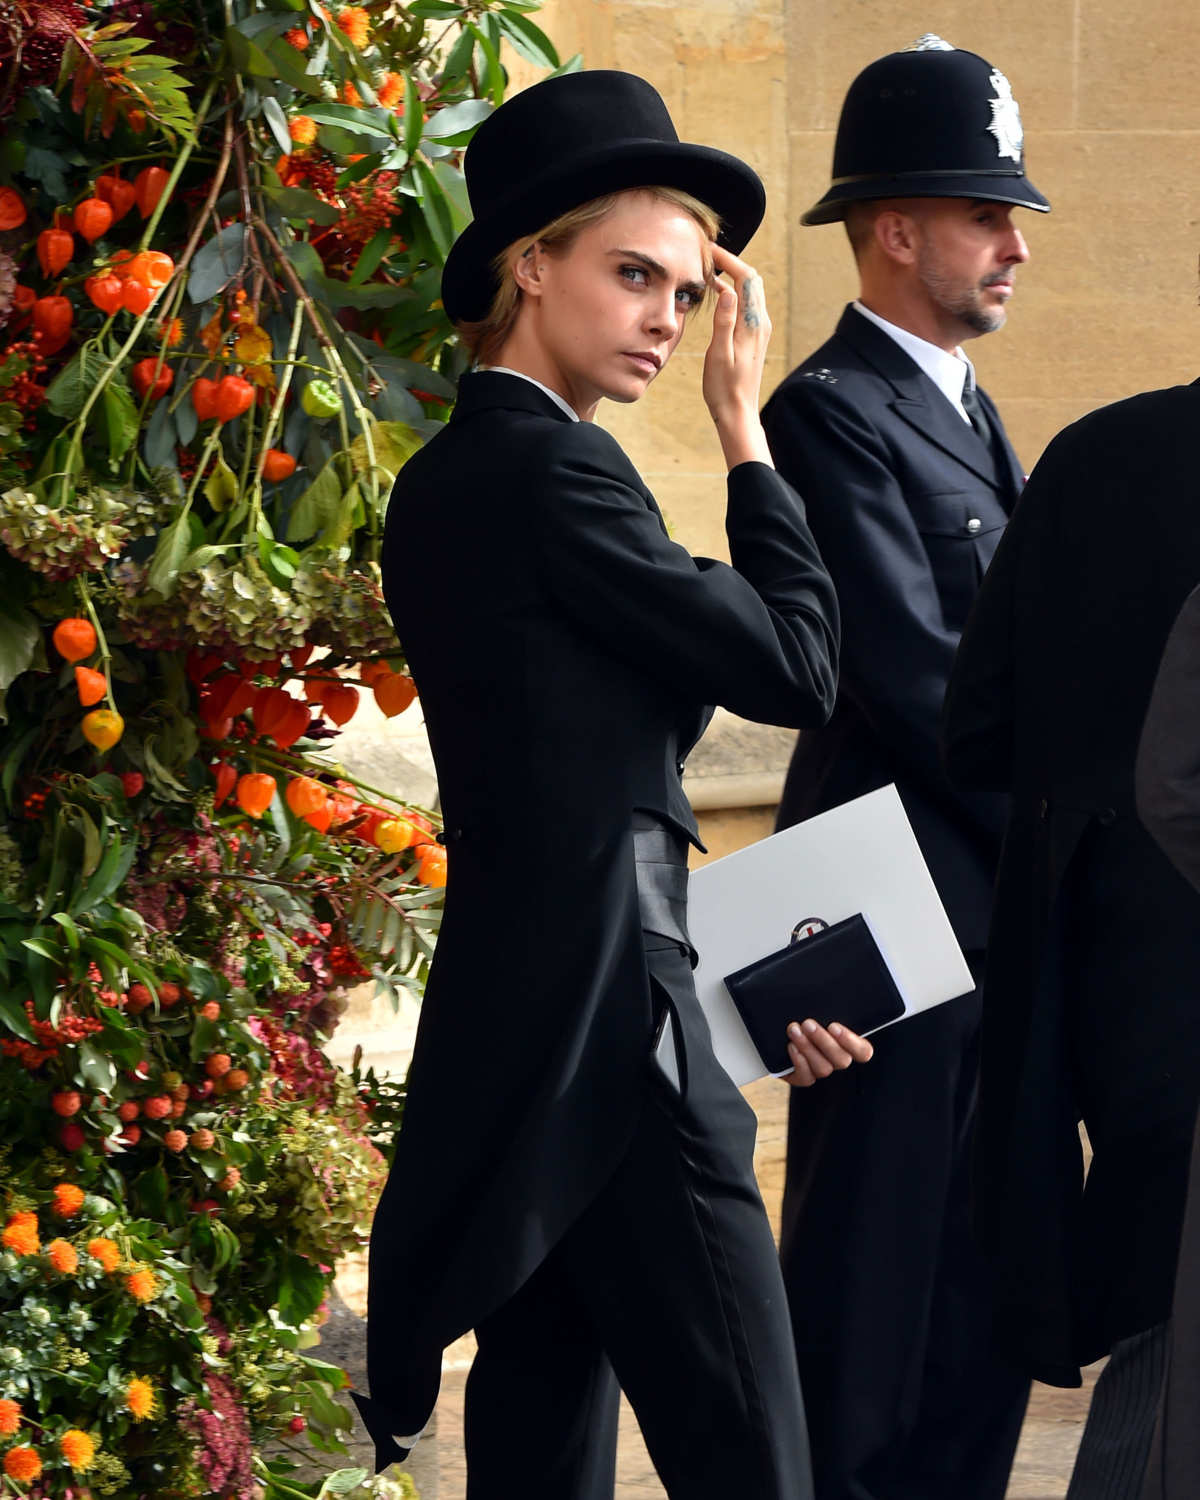 Cara at the wedding of Princess Eugenie, photo Matt Crossick, Getty Images